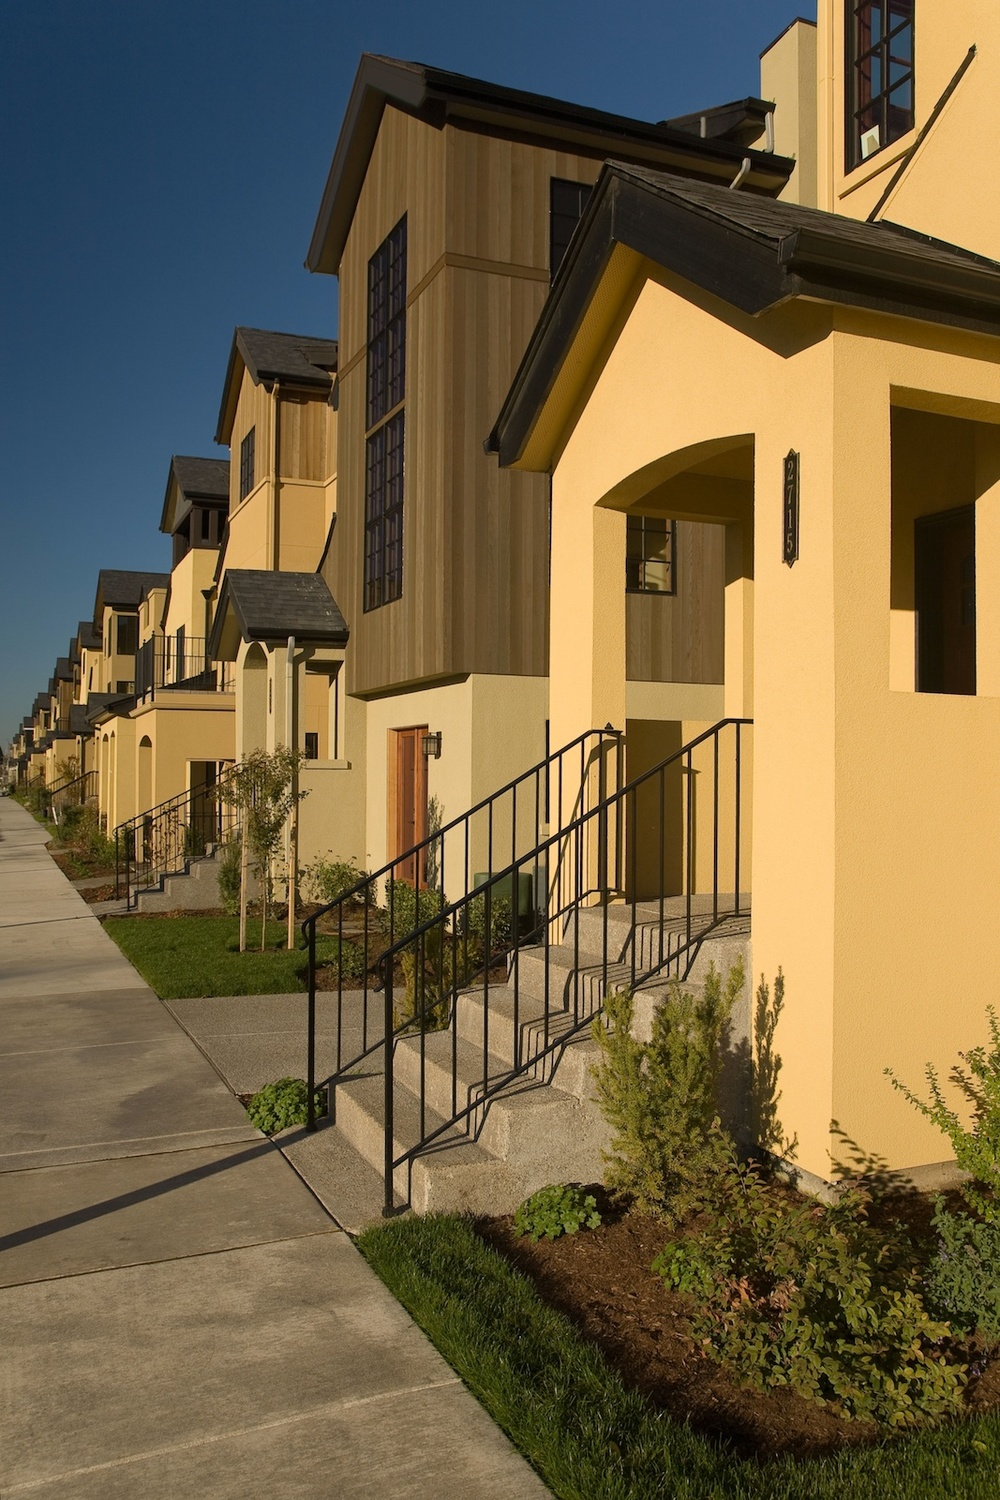 0517_13_CVTownhomes_Vertical3.jpg